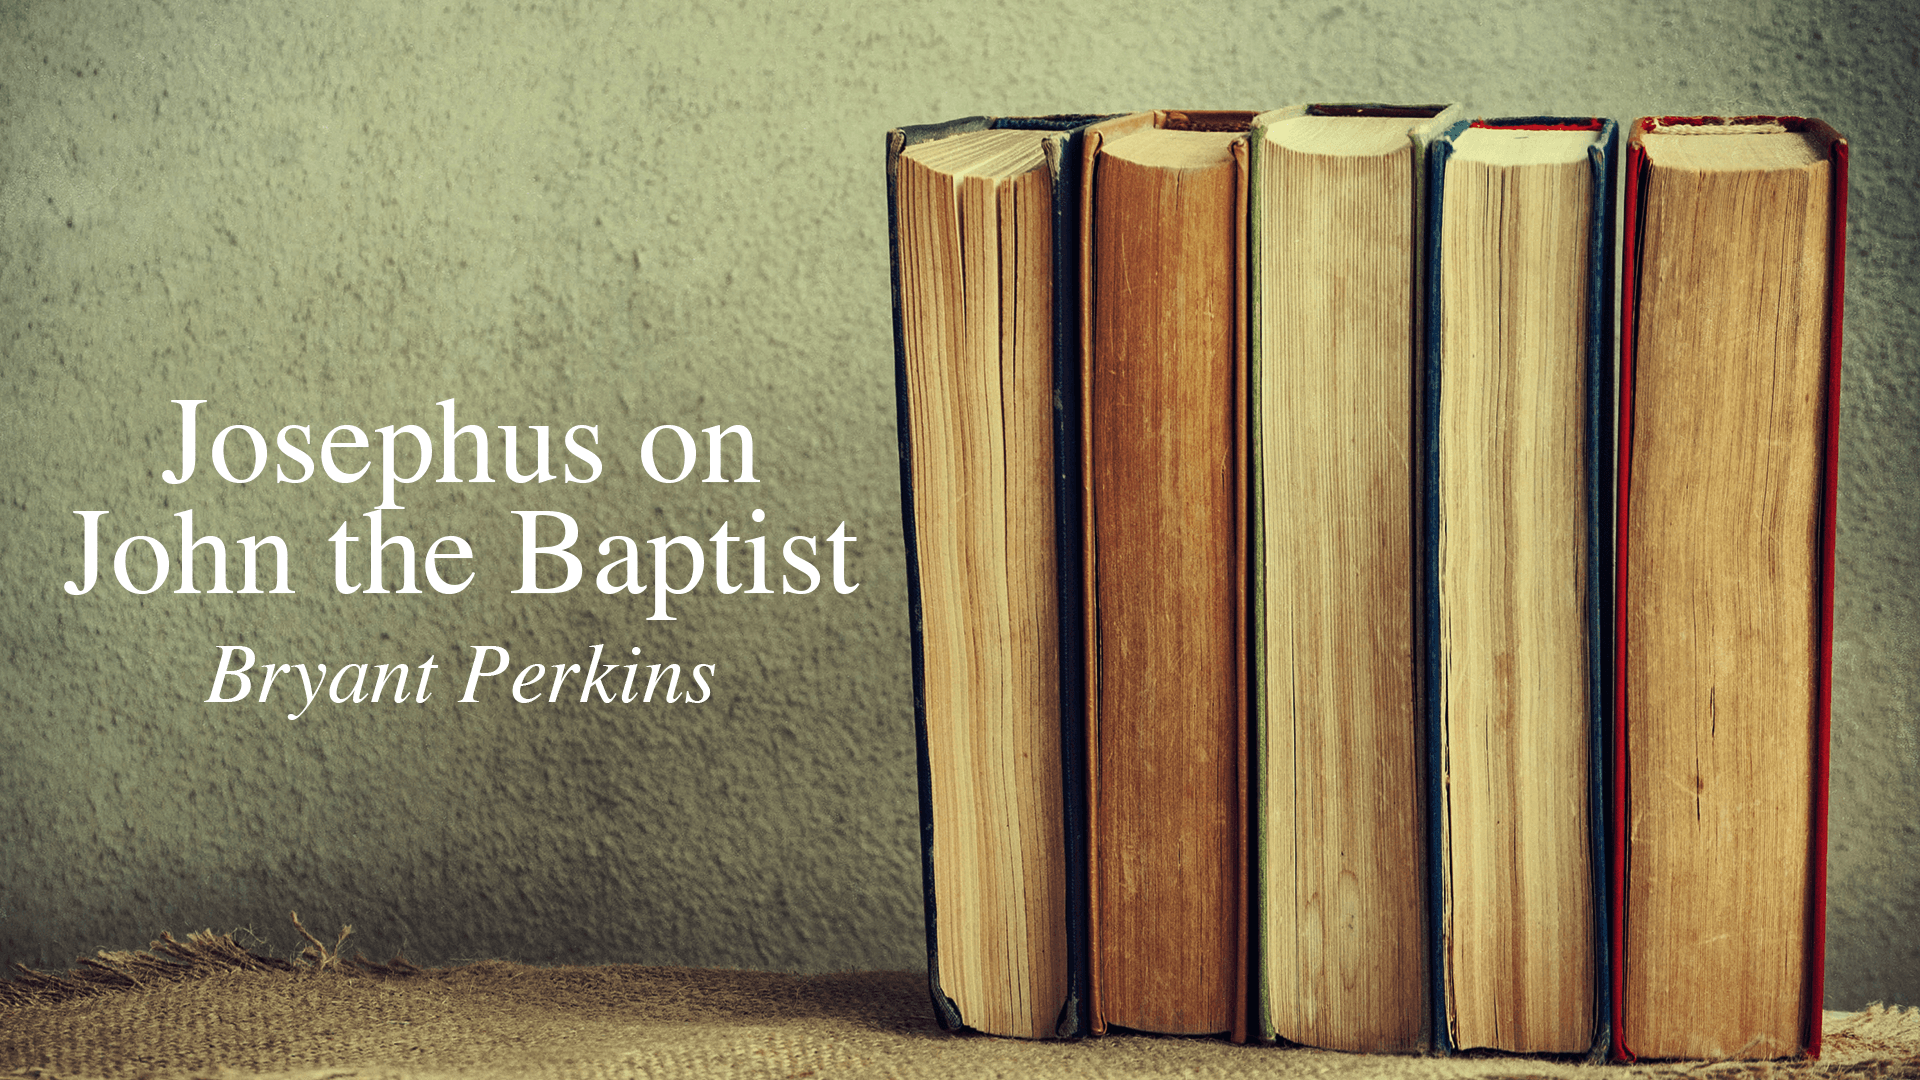 Bryant Perkins Author At Liberty Church Of Christ